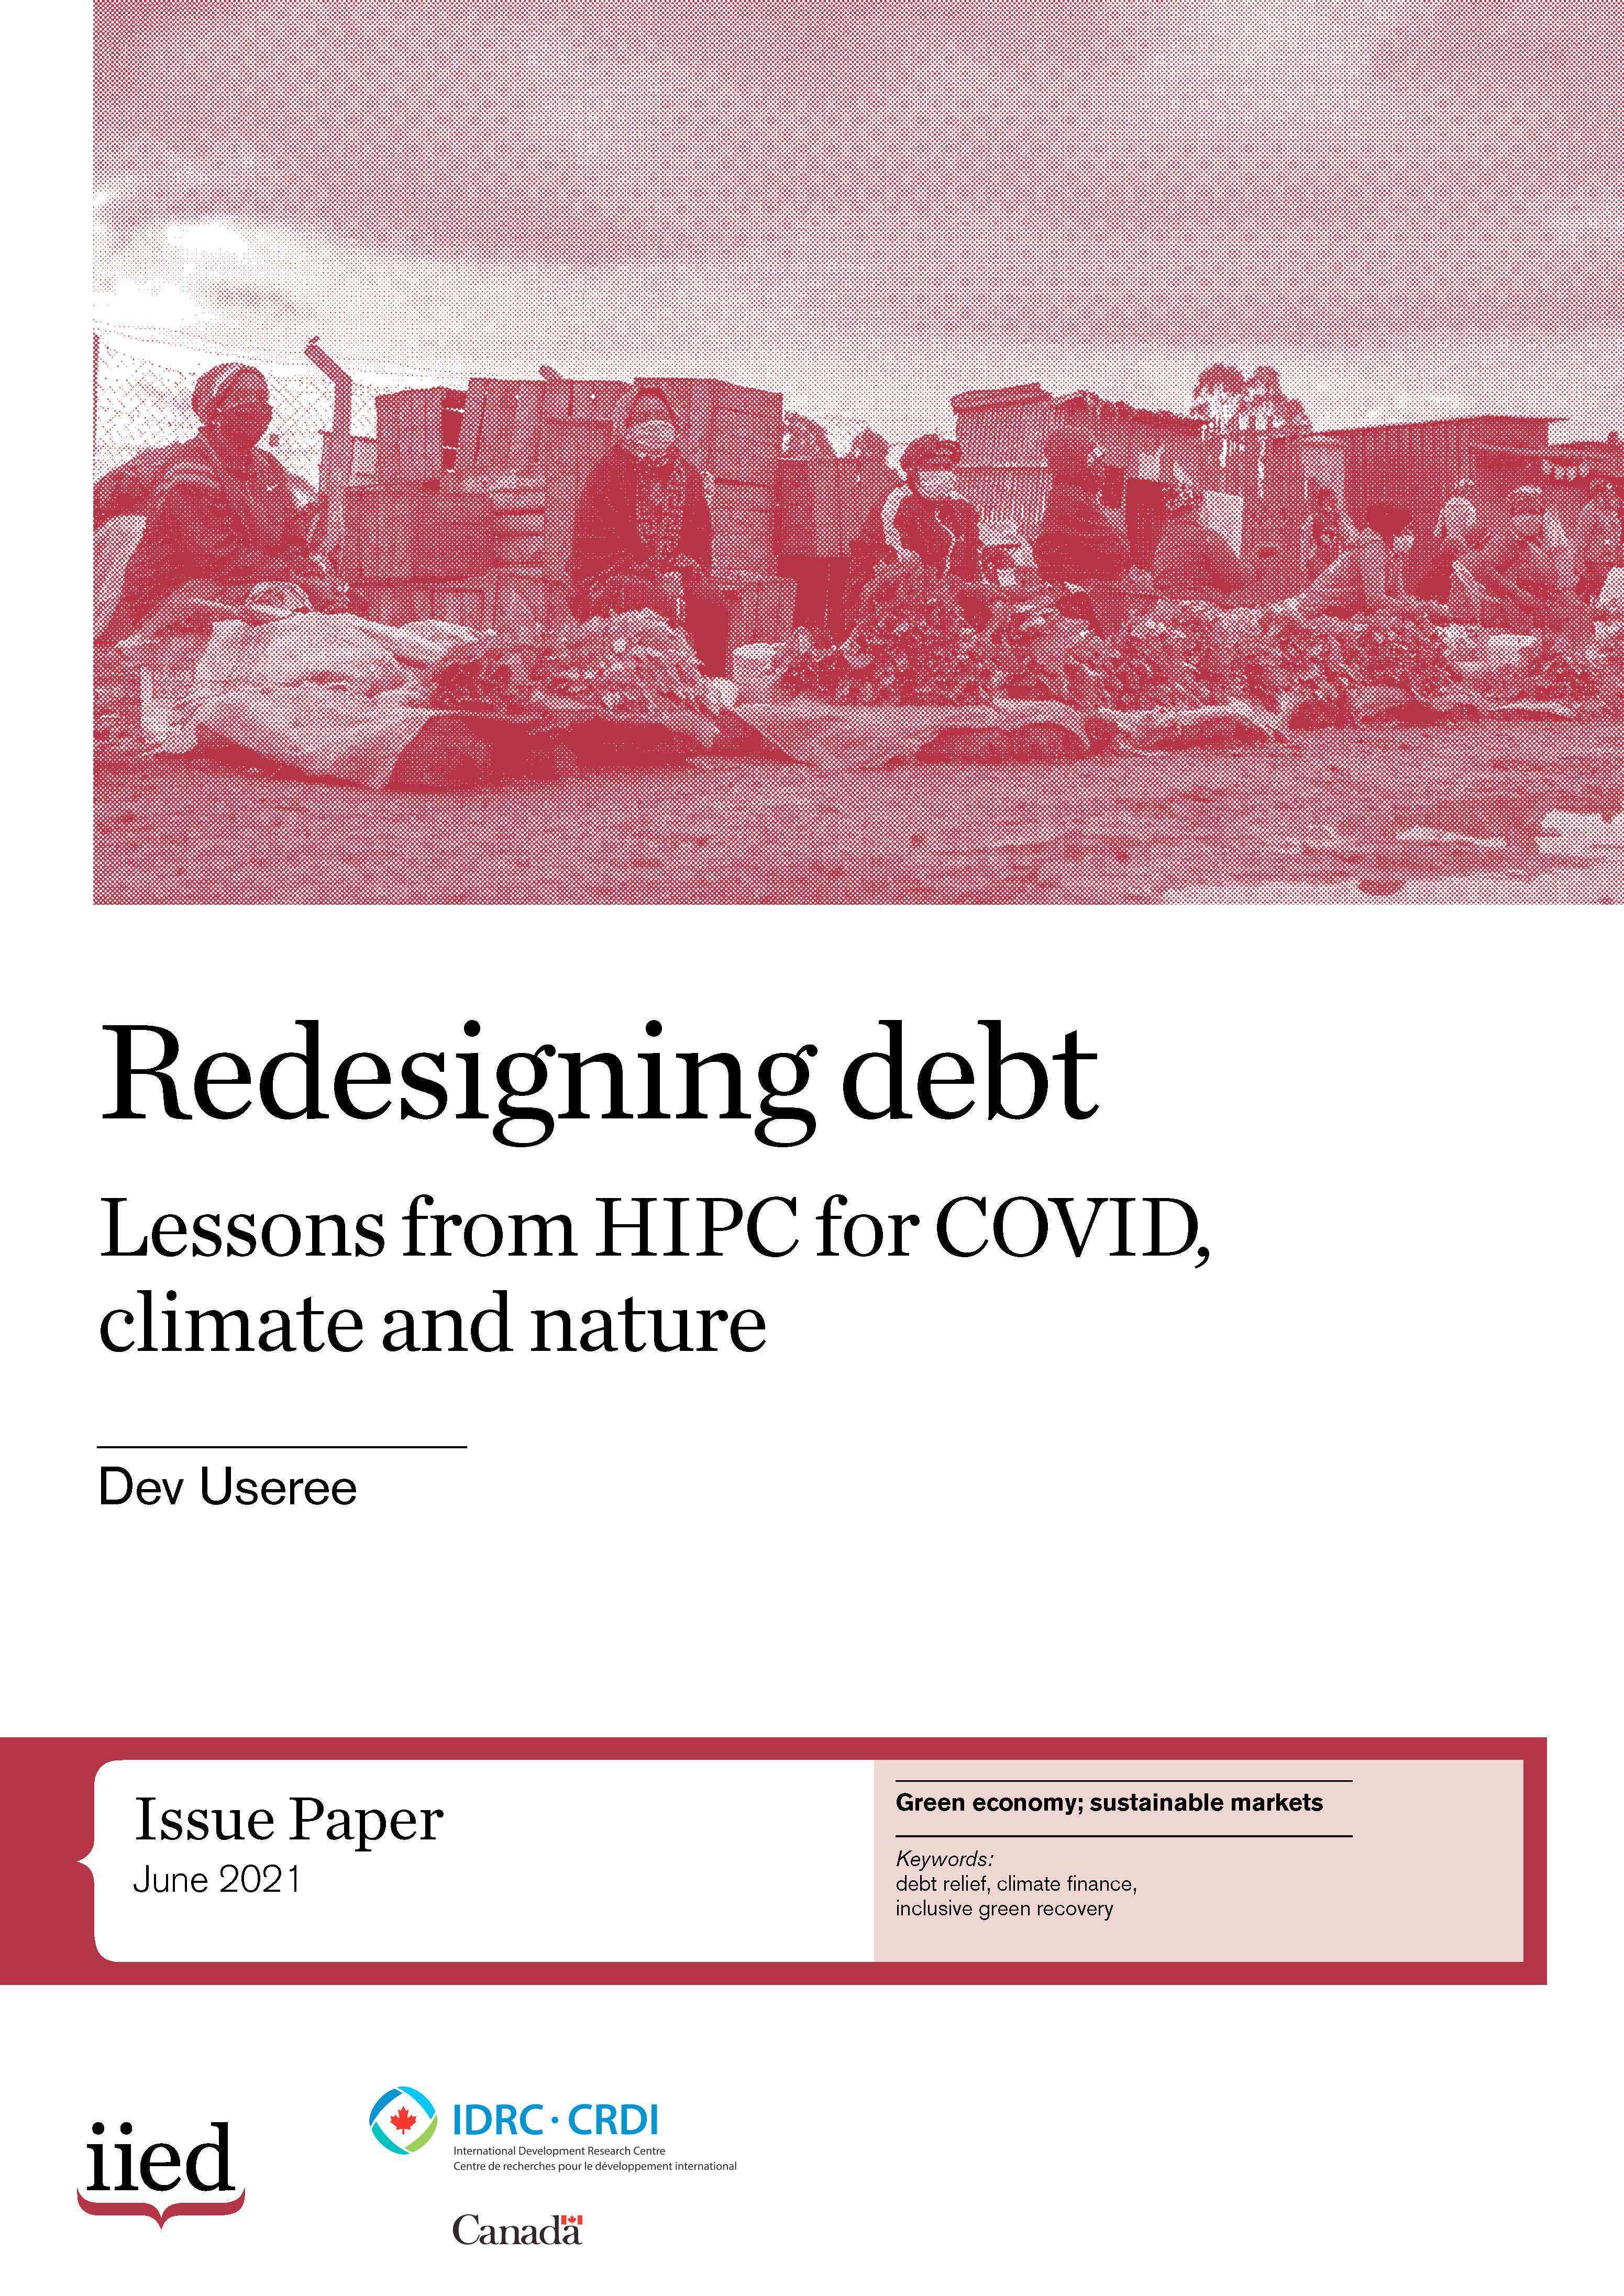 Redesigning debt: lessons from HIPC for COVID, climate and nature